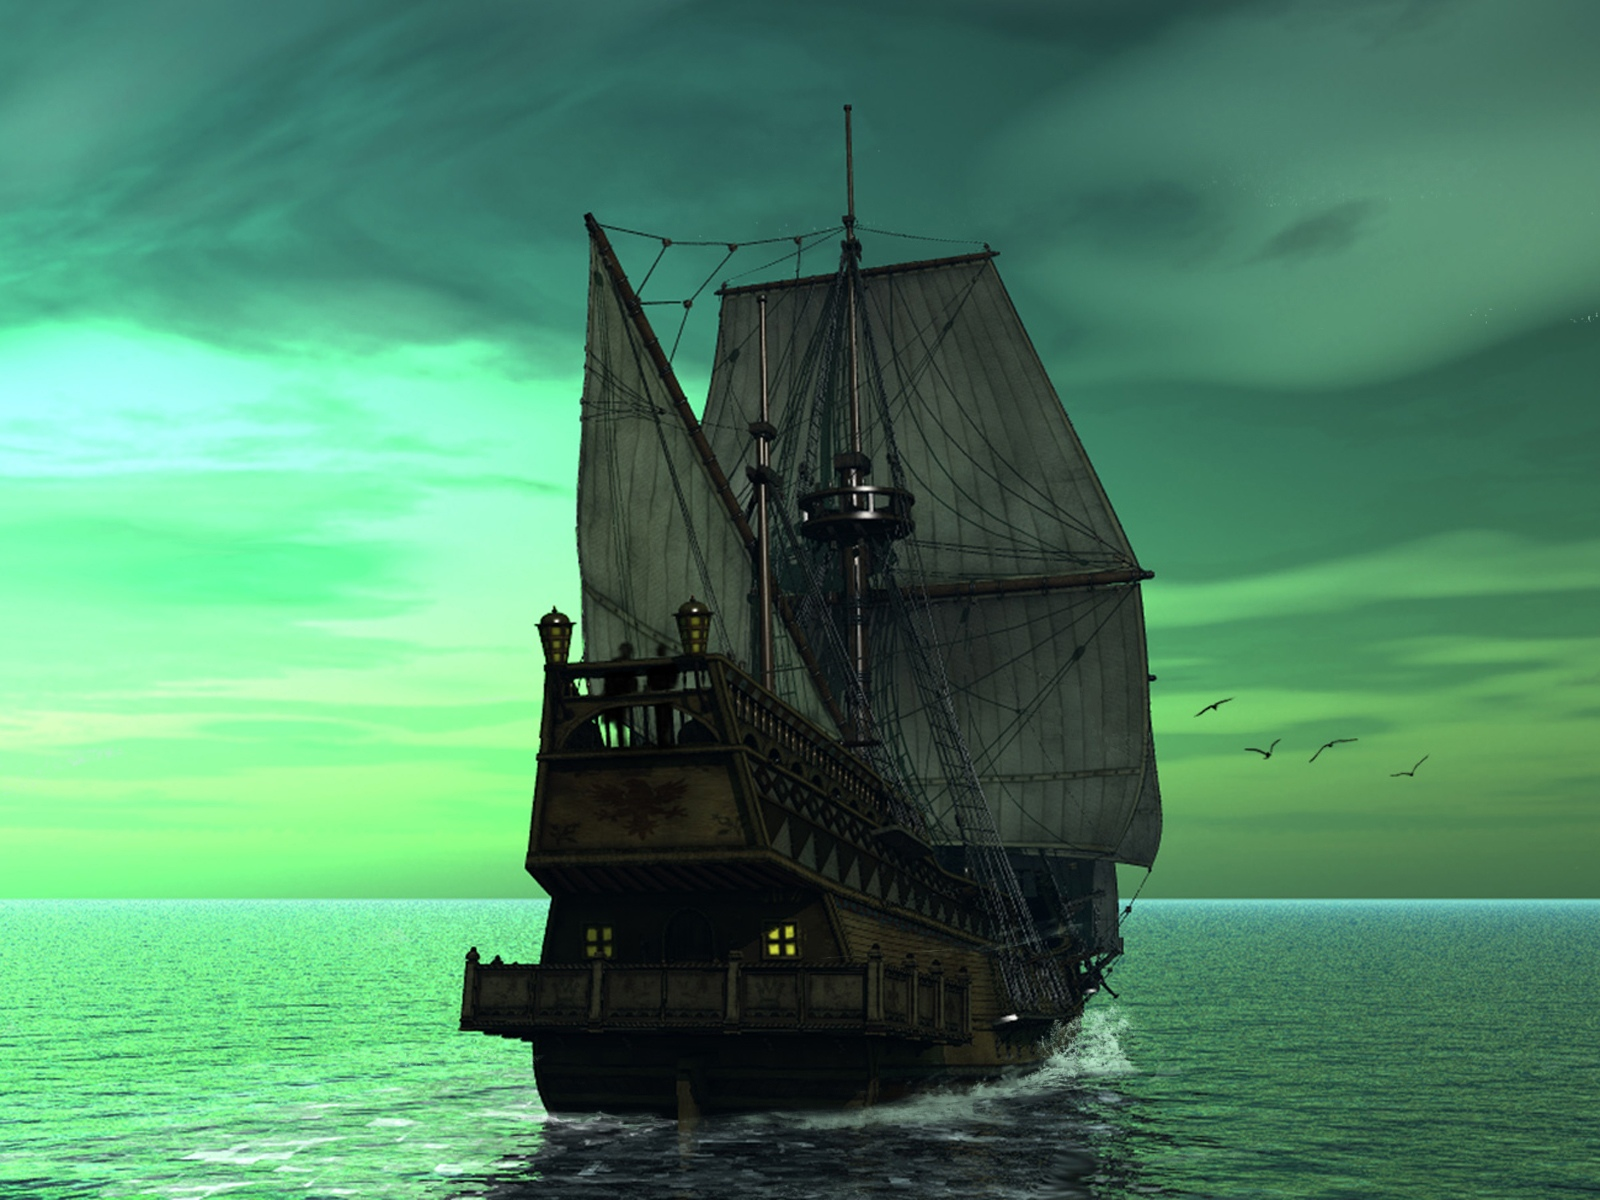 http://1.bp.blogspot.com/-TJrc1ntJTs8/UJWQjZf-6II/AAAAAAAABEI/hrtAonB0SB0/s1600/3D+Pirates+of+Caribbean+ships+wallpapers+(22).jpg